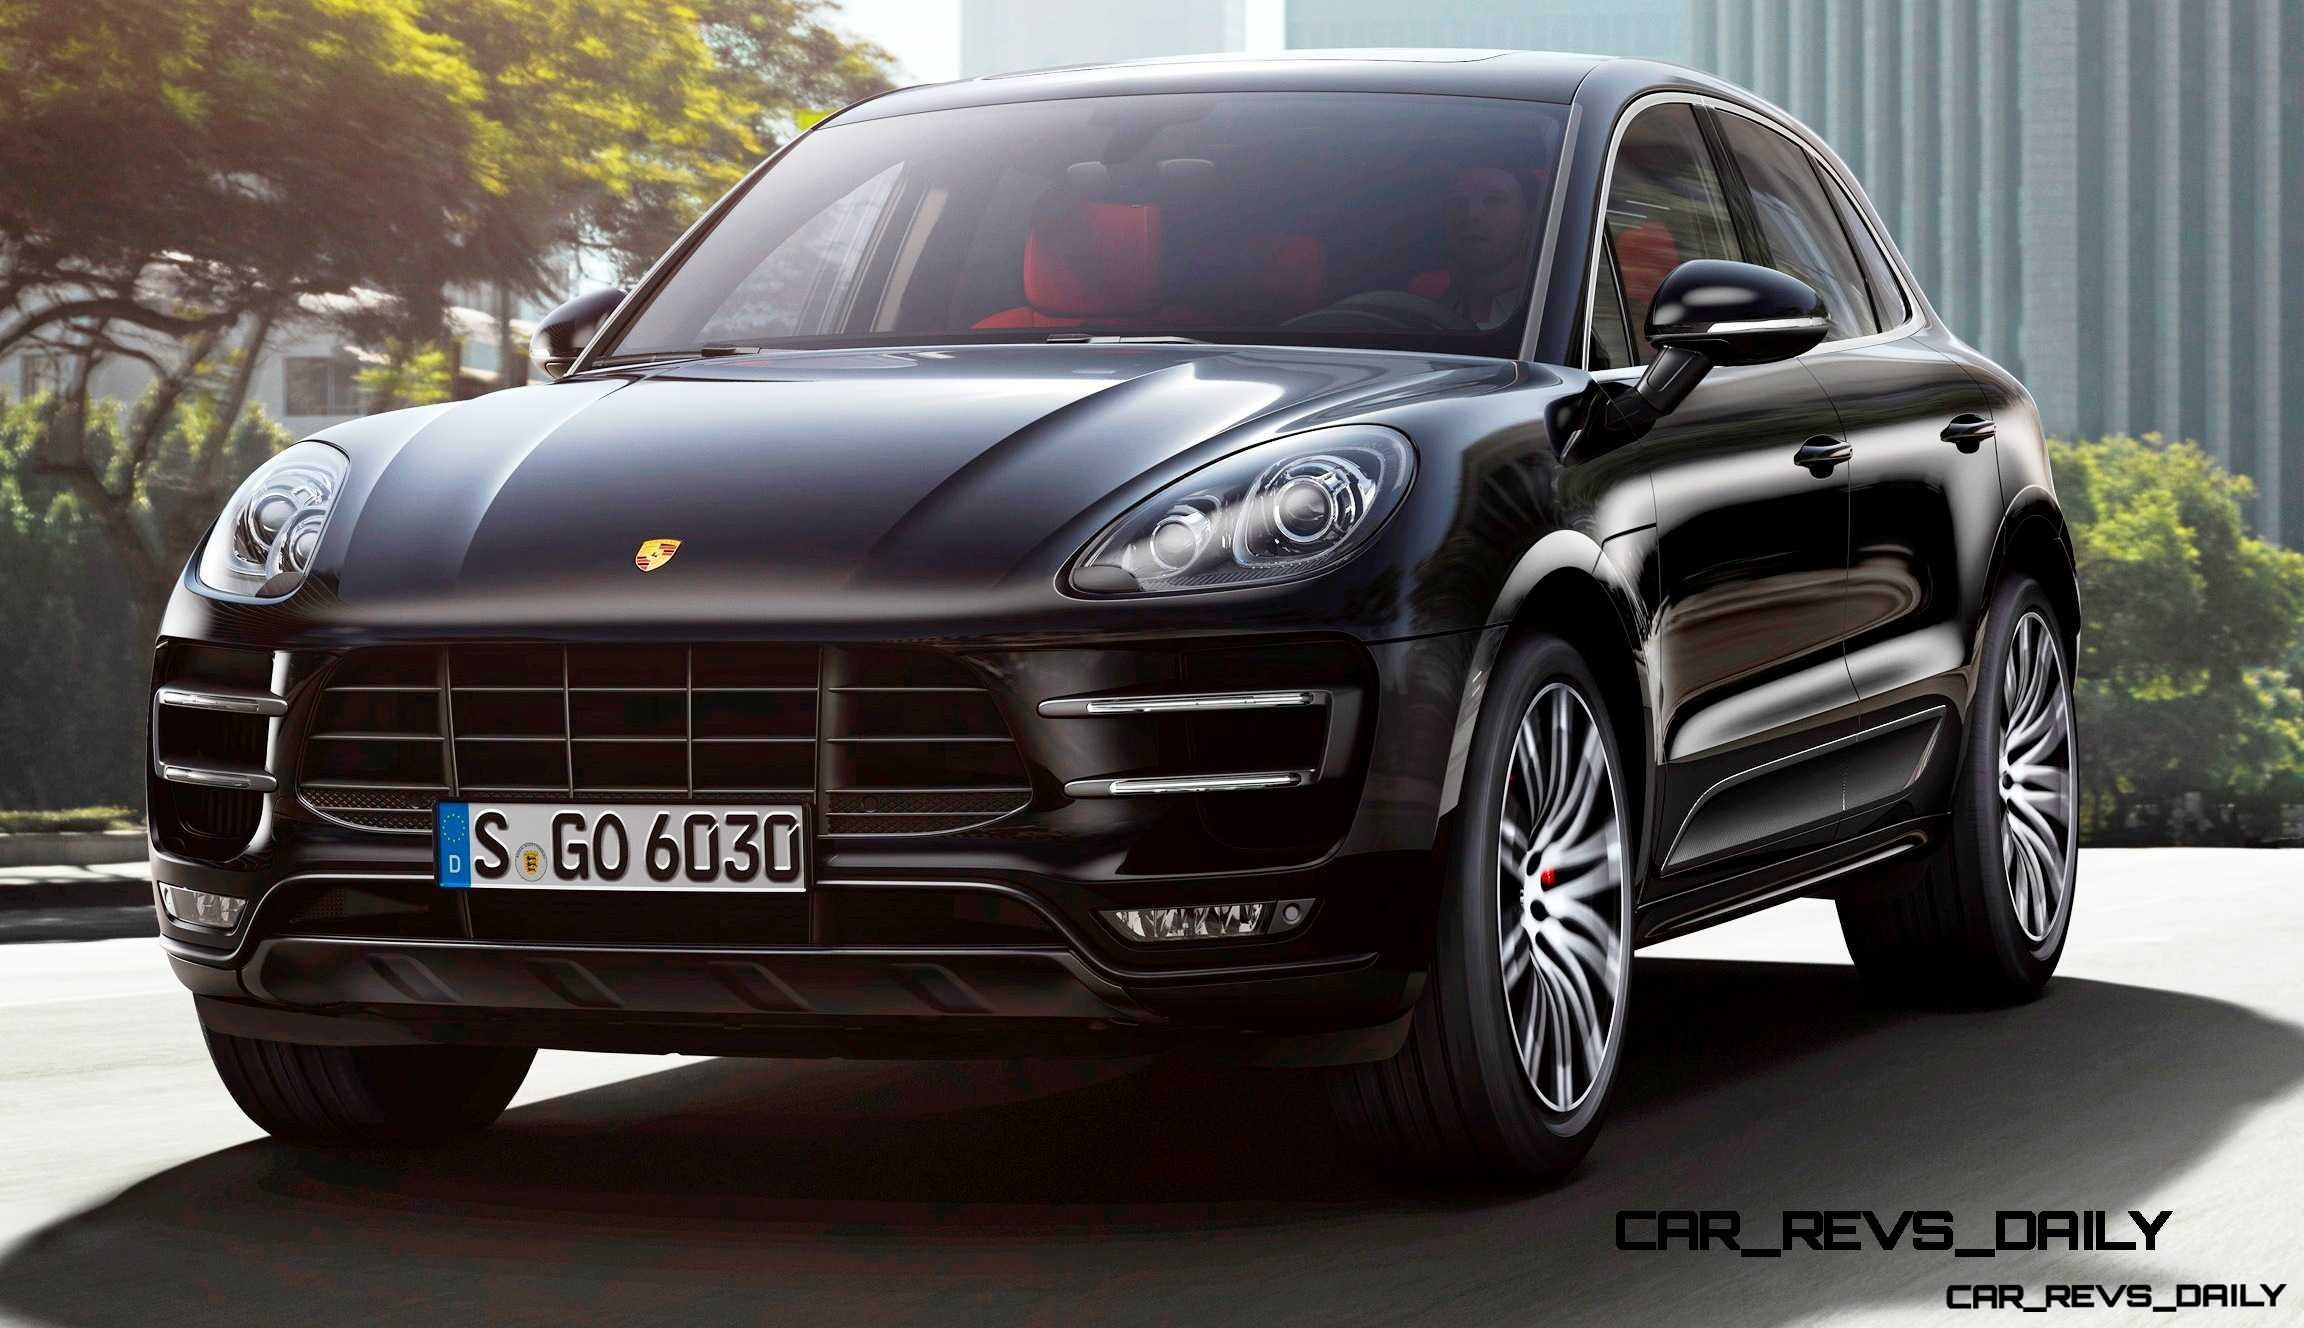 2014 Porsche Macan Turbo and Macan S - Official Debut Photos14